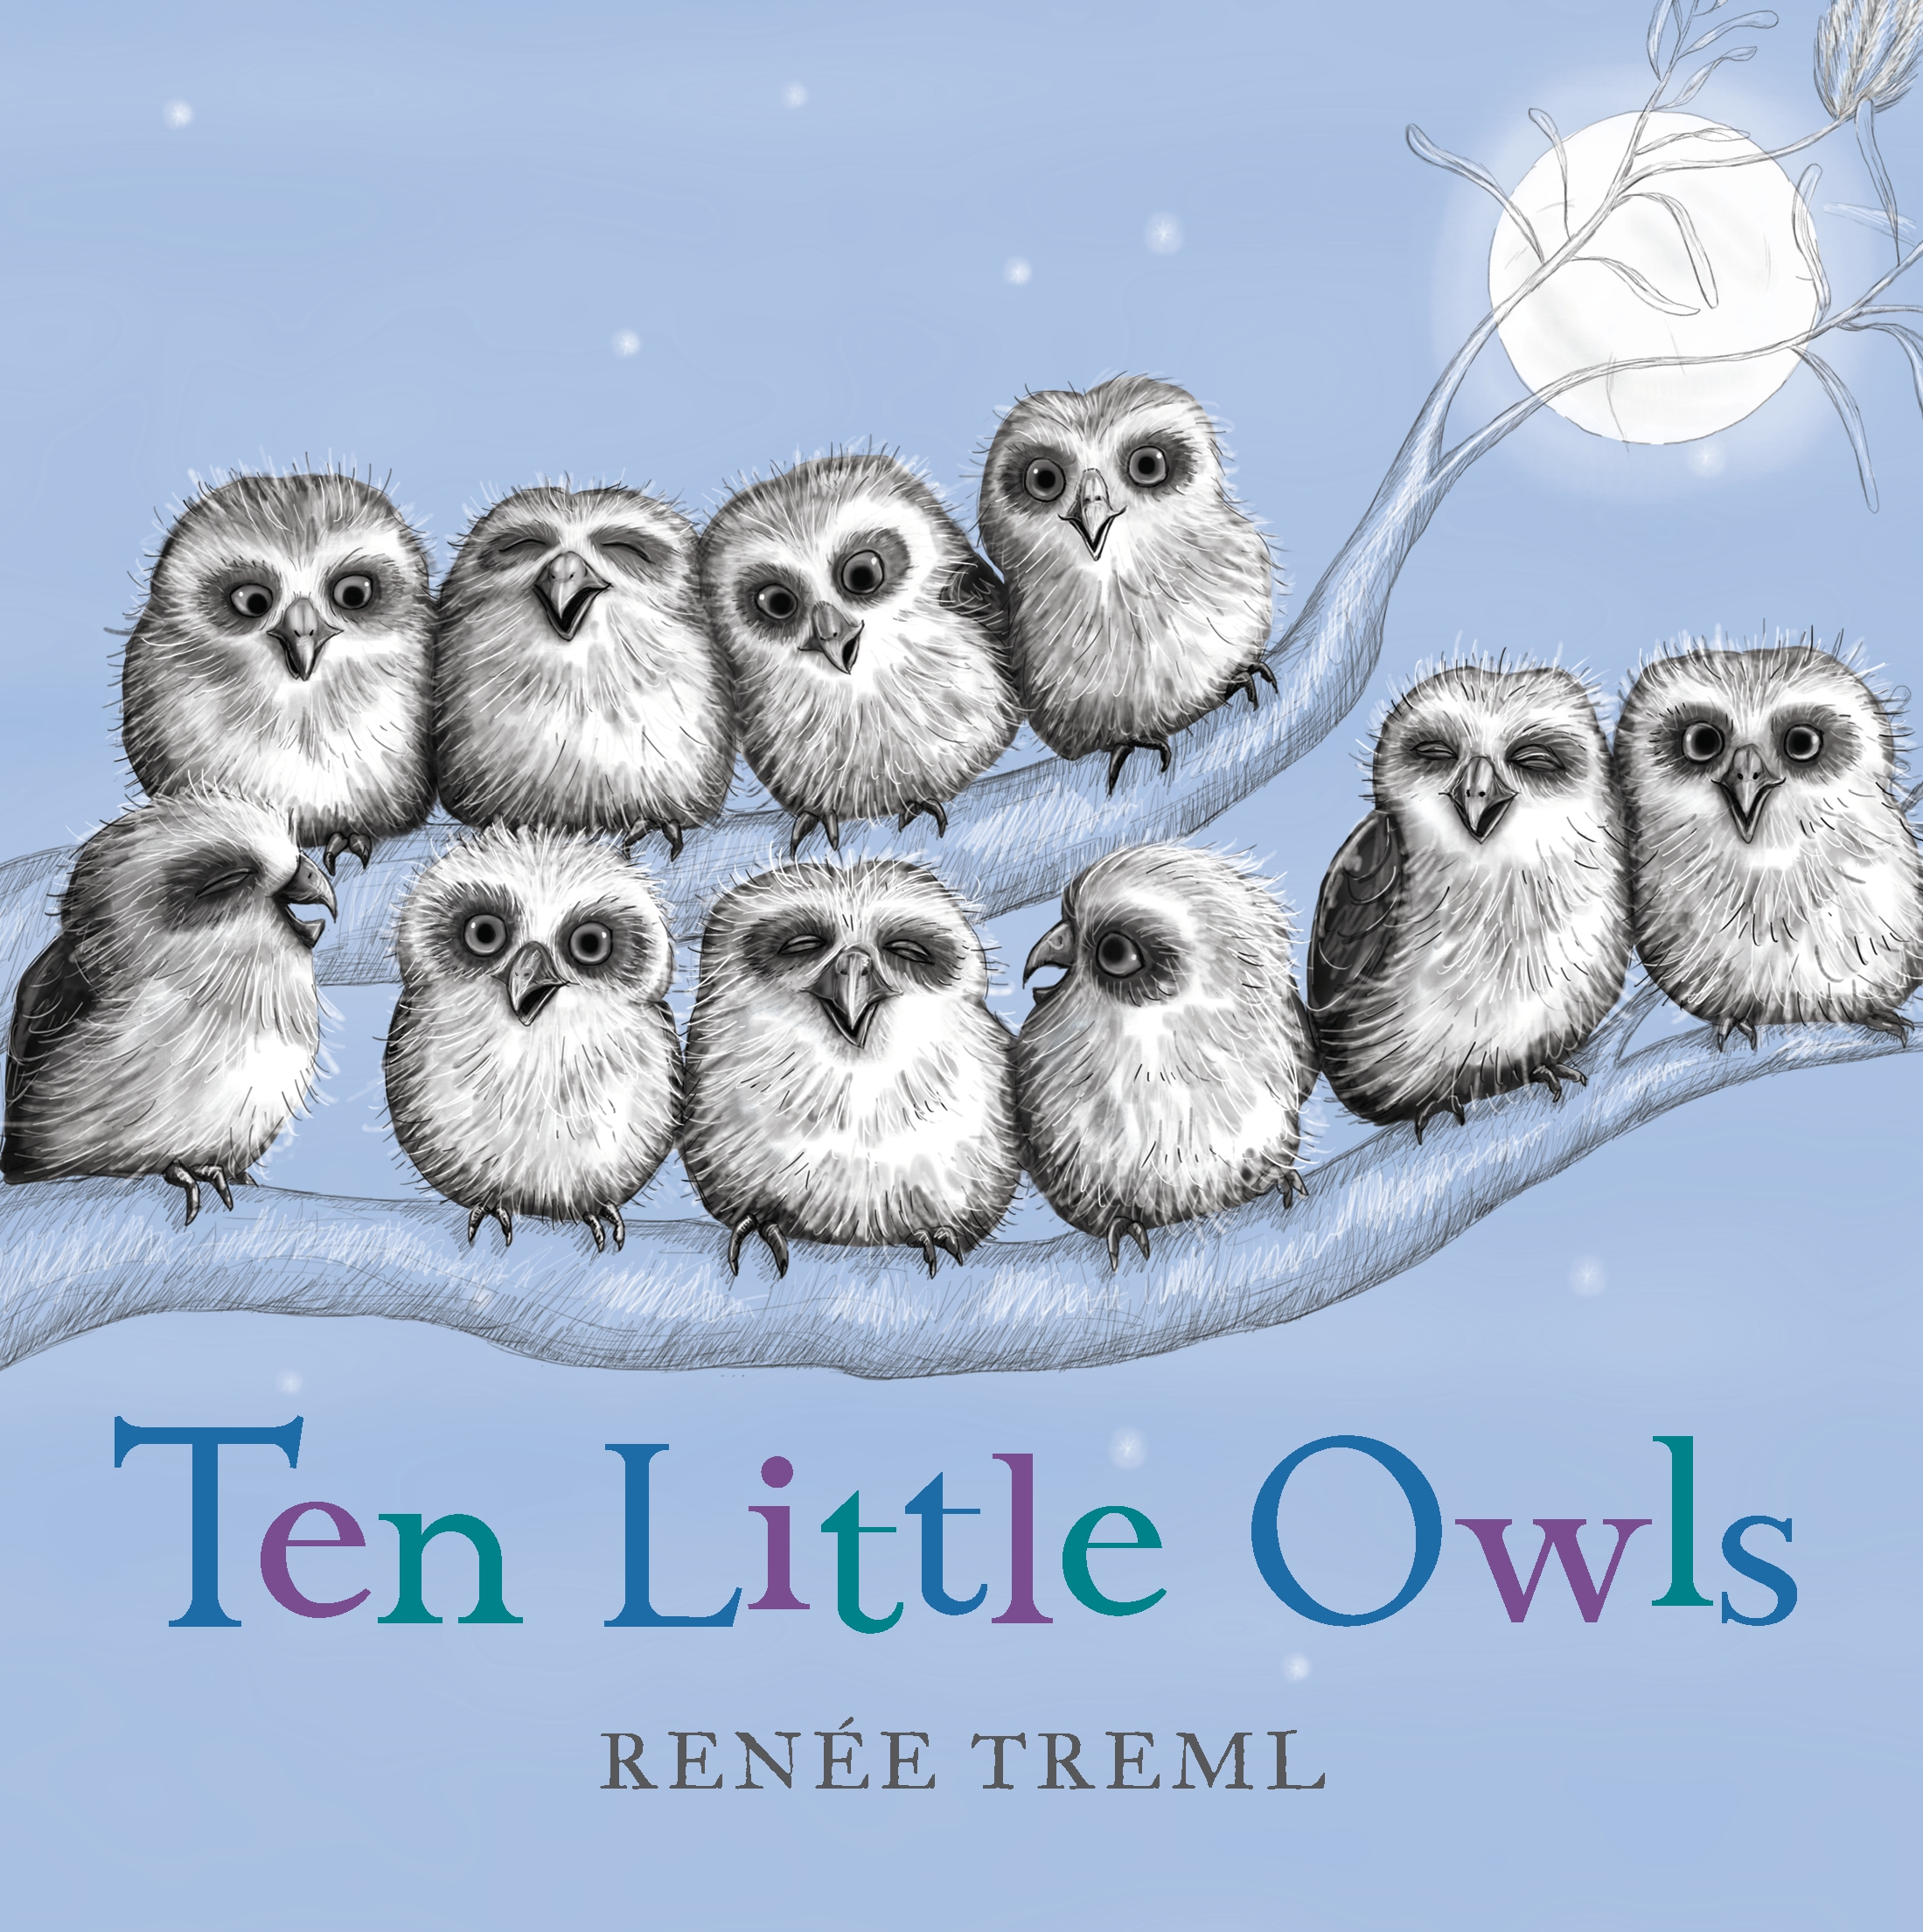 Ten little owls book cover